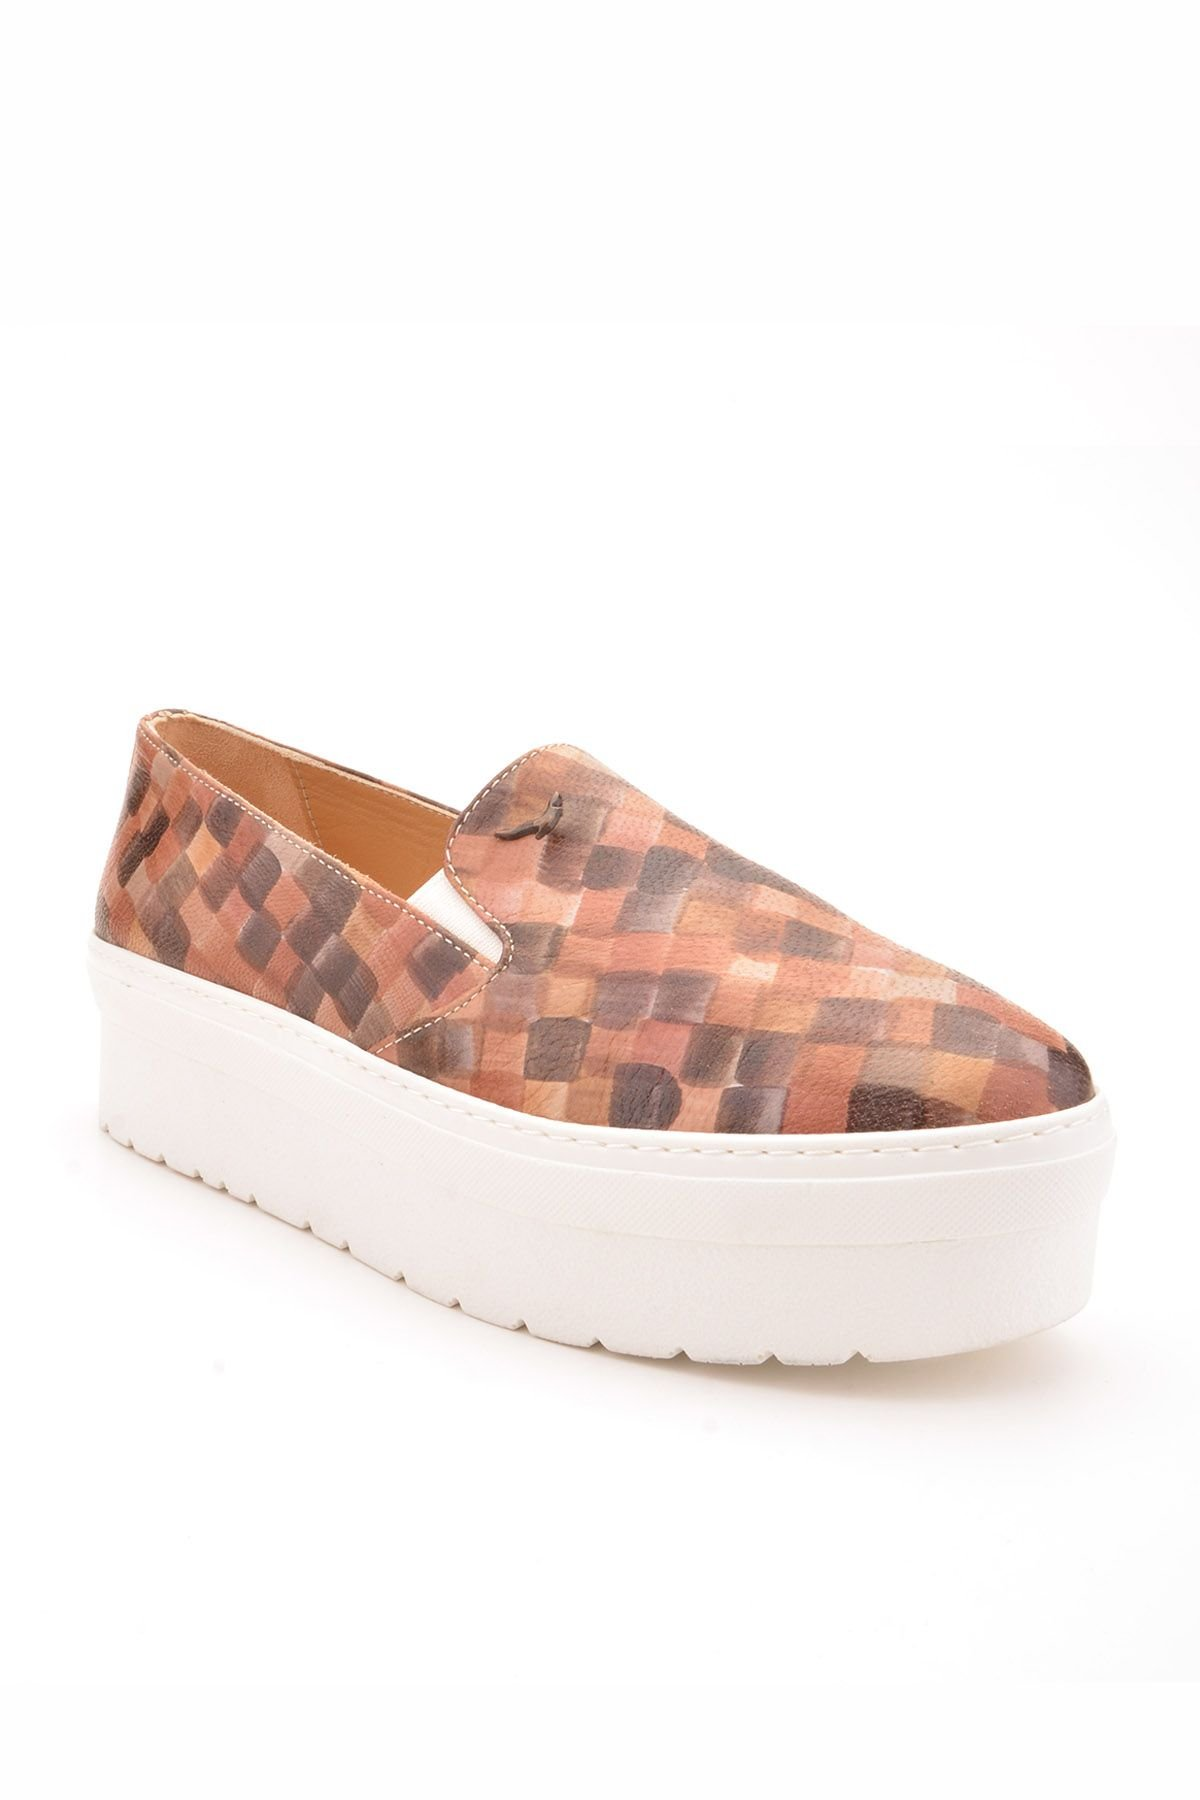 Art Goya High-Soled Women Sneakers From Genuine Leather With Square Pattern Brown